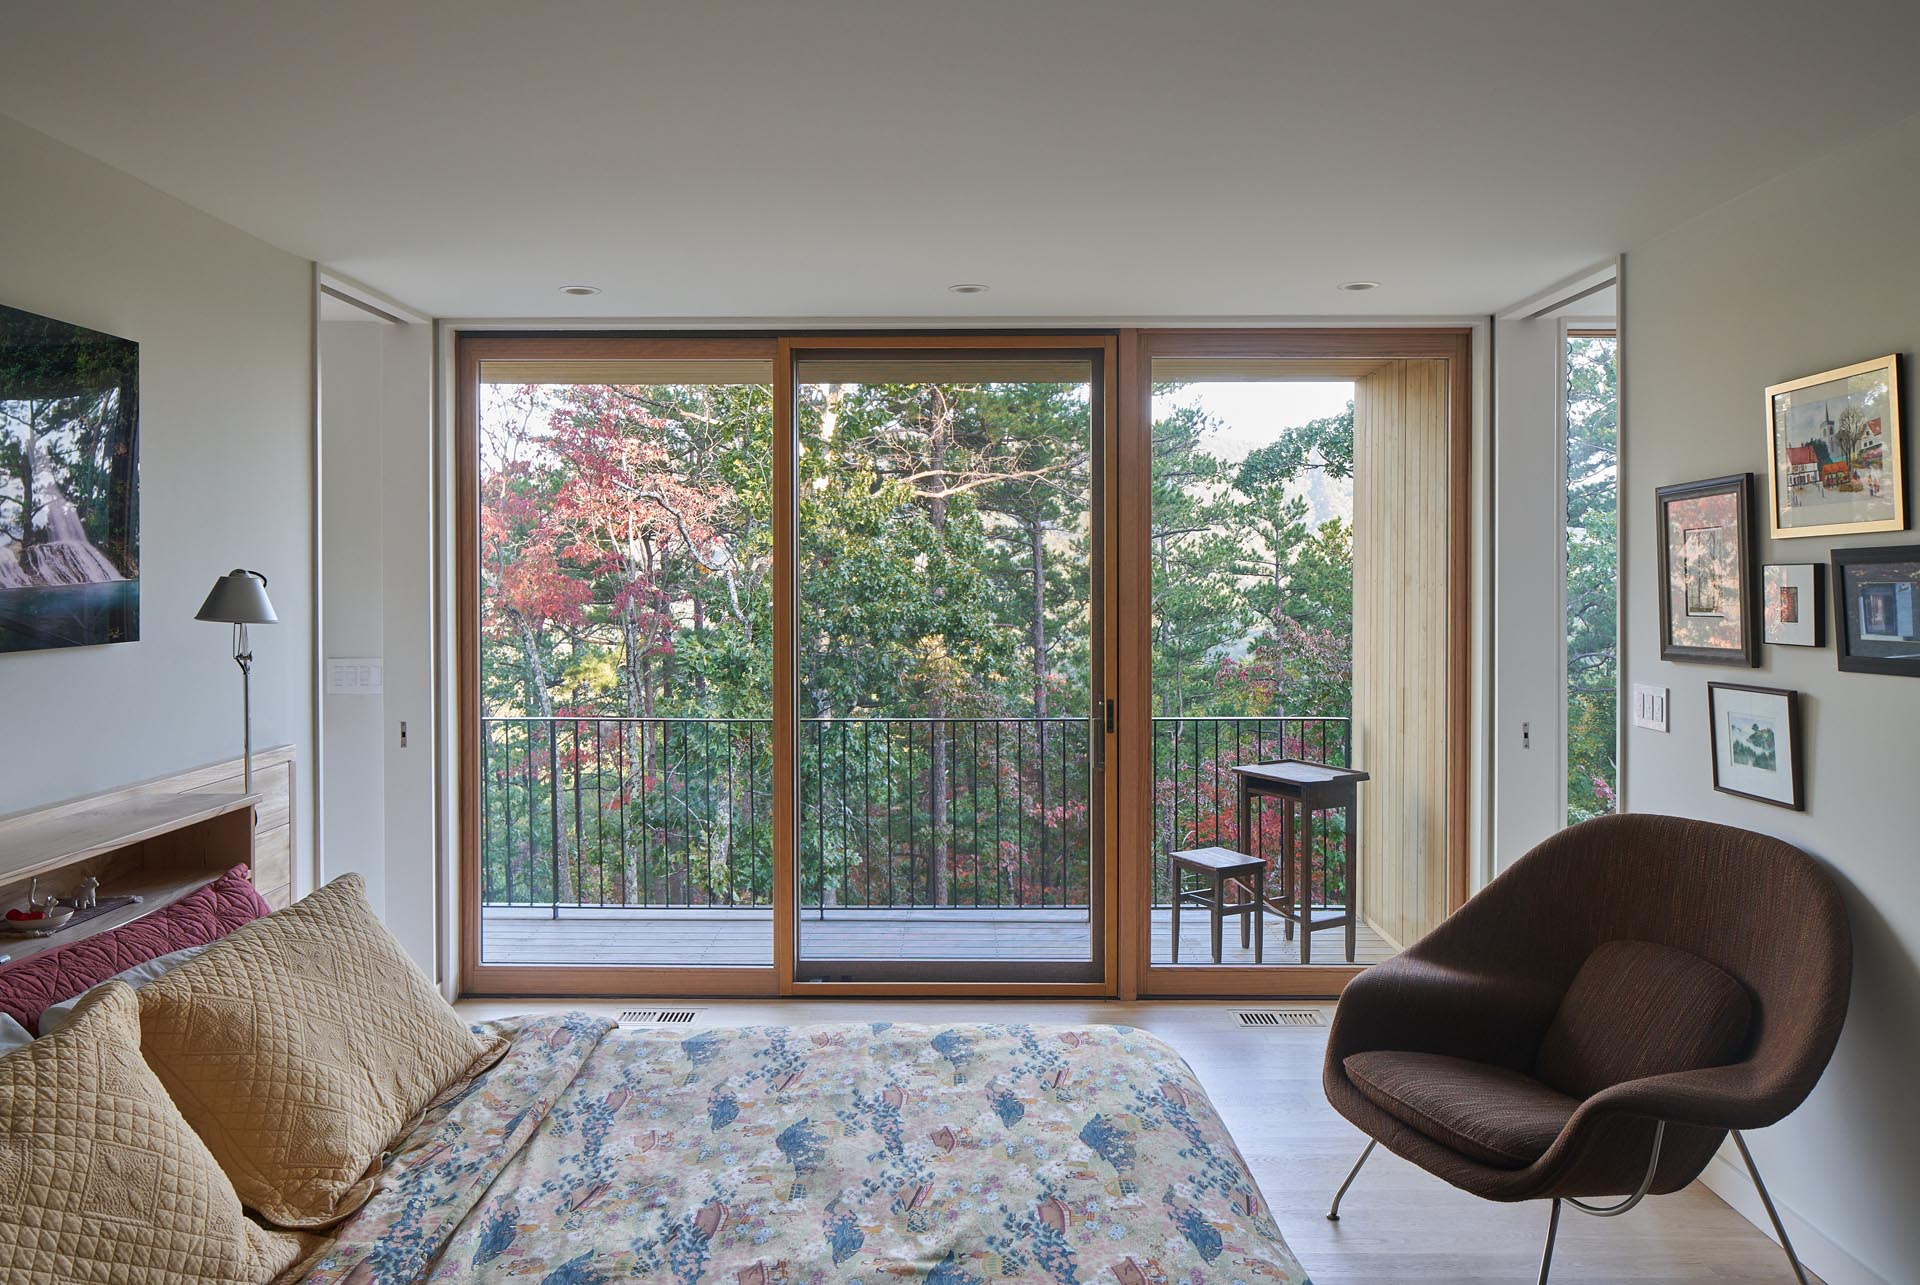 This bedroom has a sliding glass door that opens to a private outdoor space.